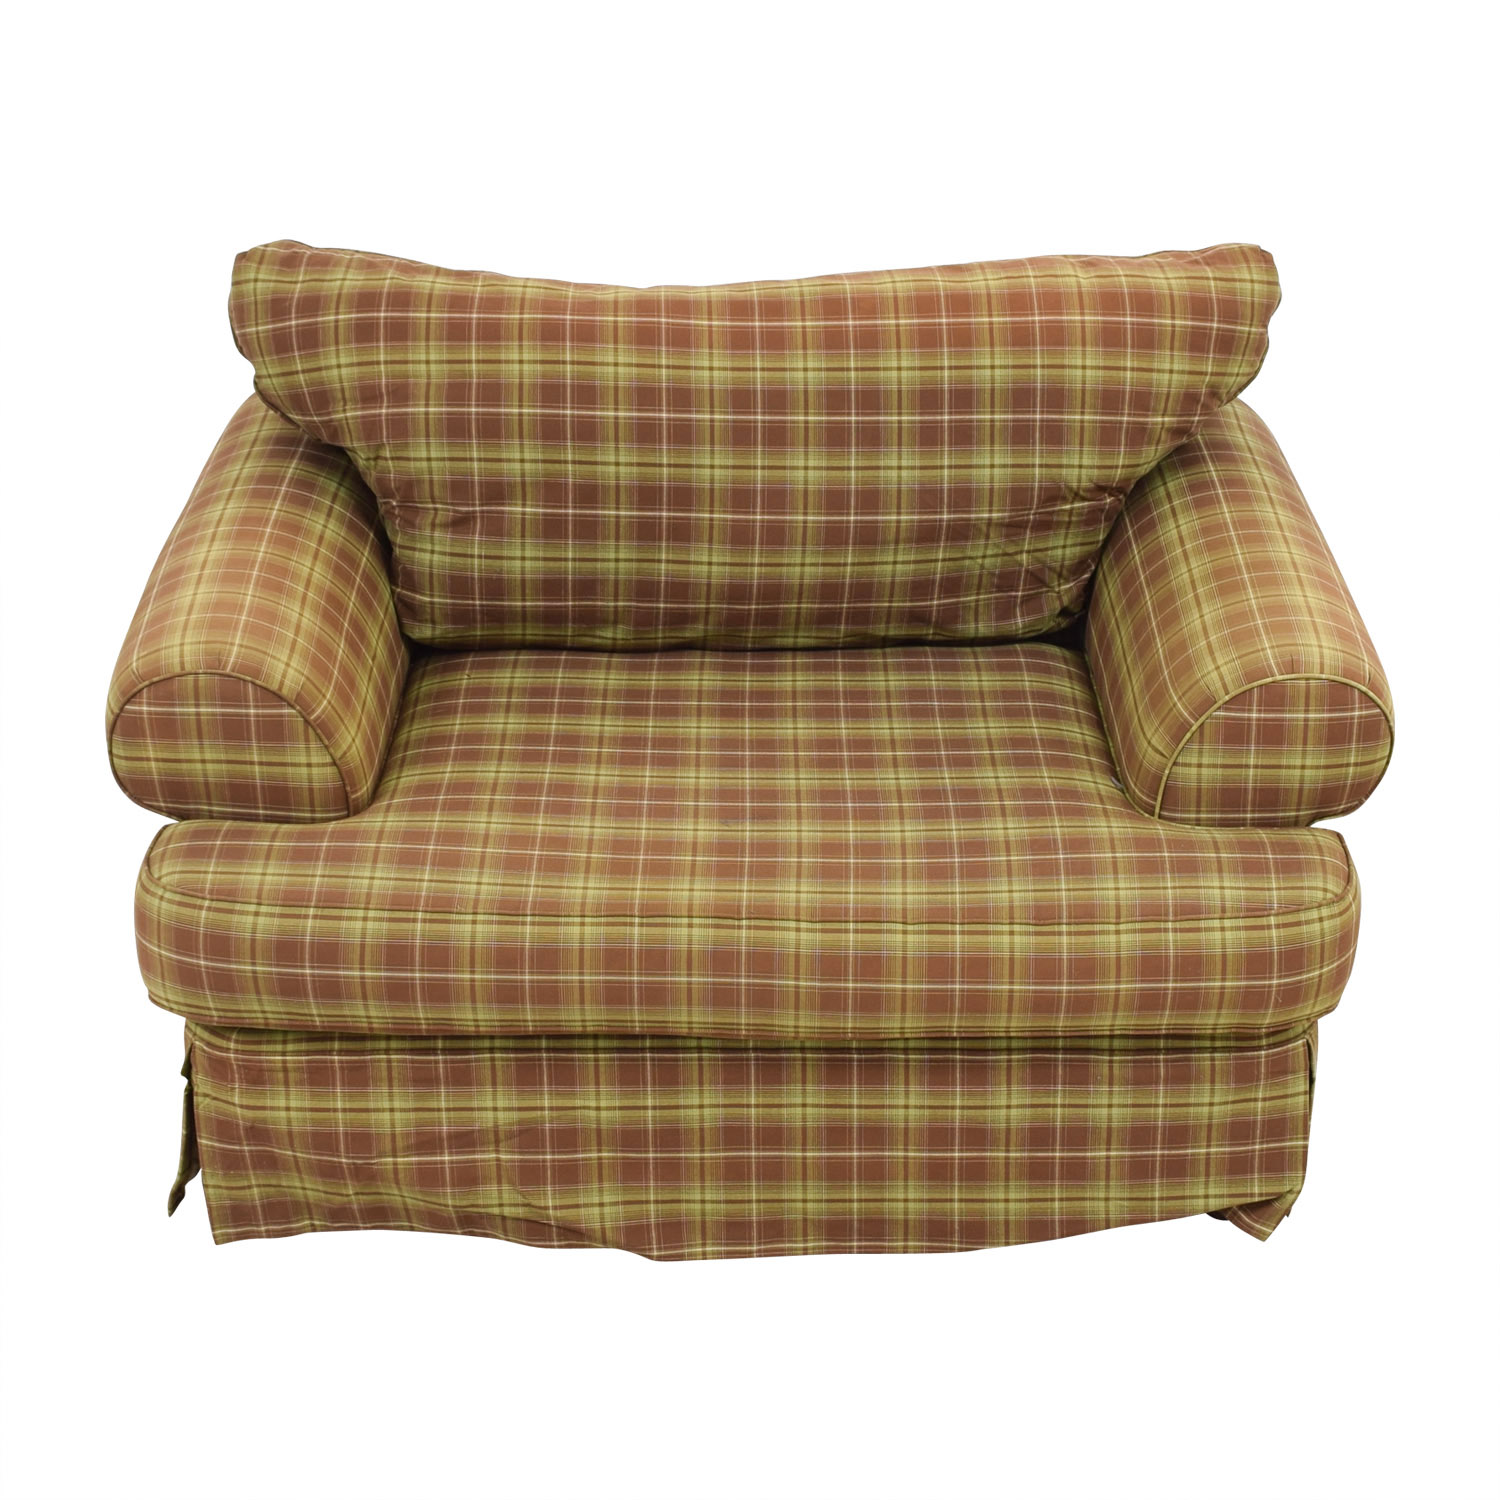 buy Klaussner Green and Beige Plaid Loveseat Klaussner